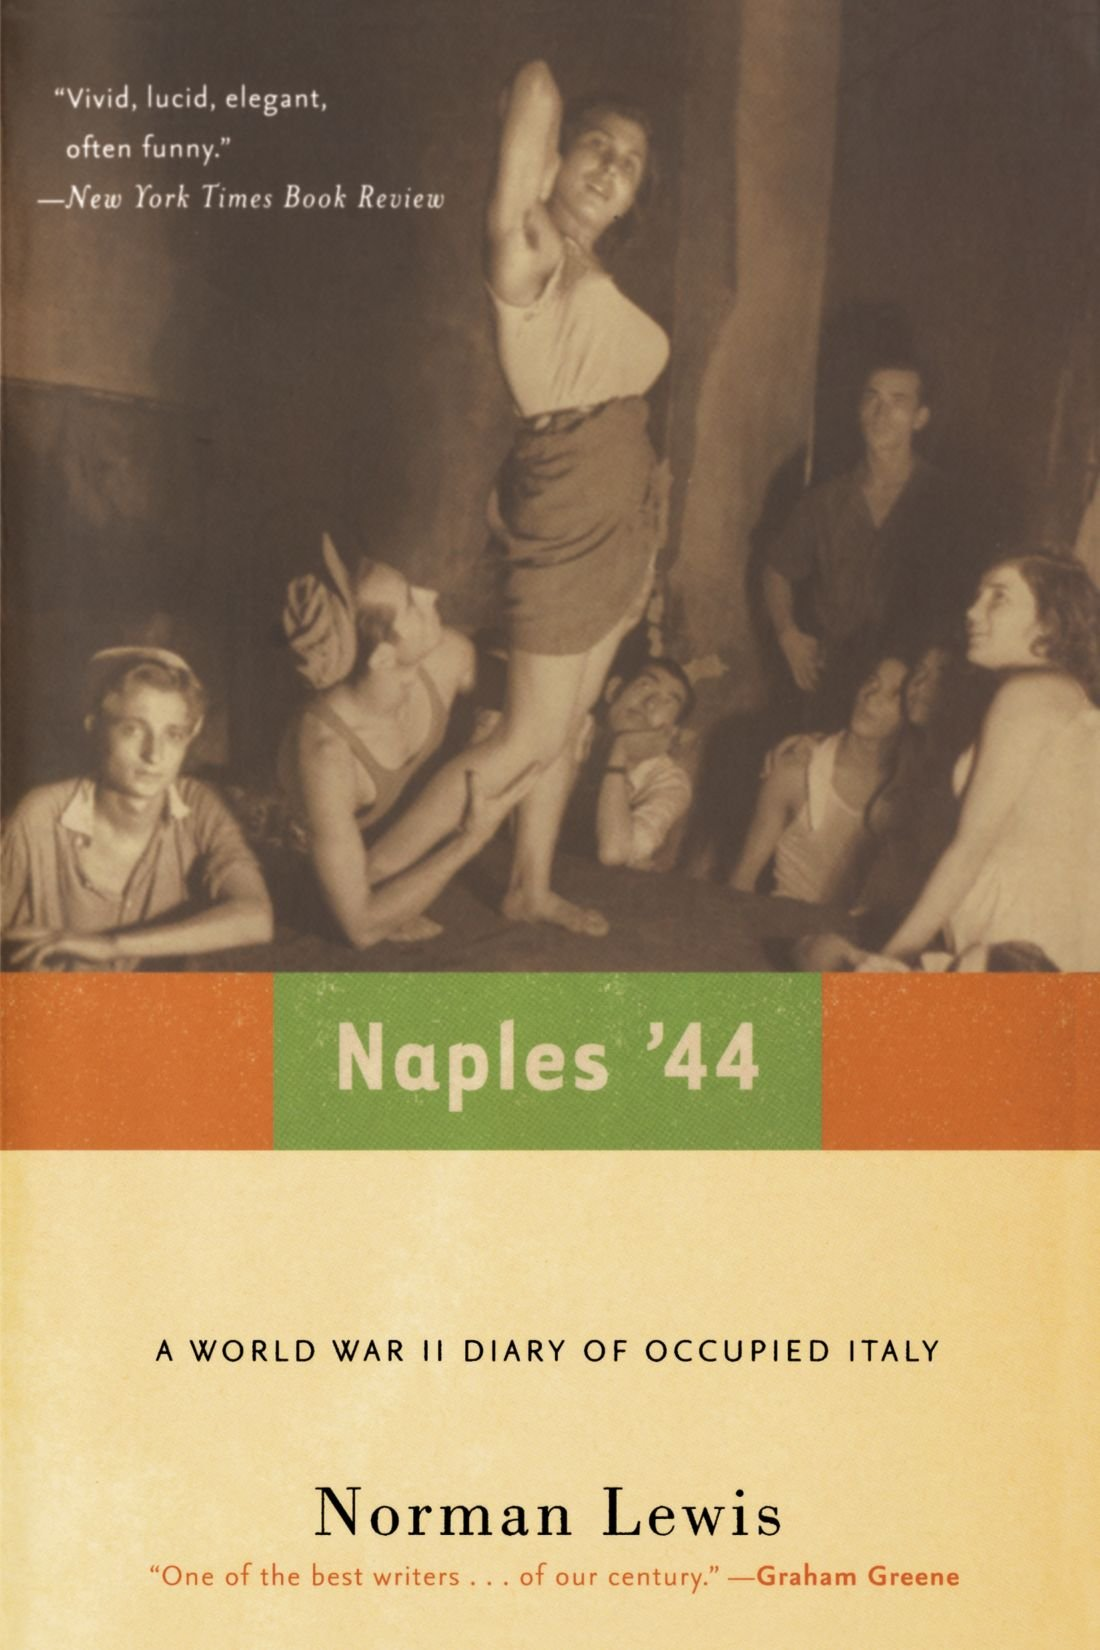 Amazon.com: Naples '44: A World War II Diary of Occupied Italy  (9780786714384): Norman Lewis: Books